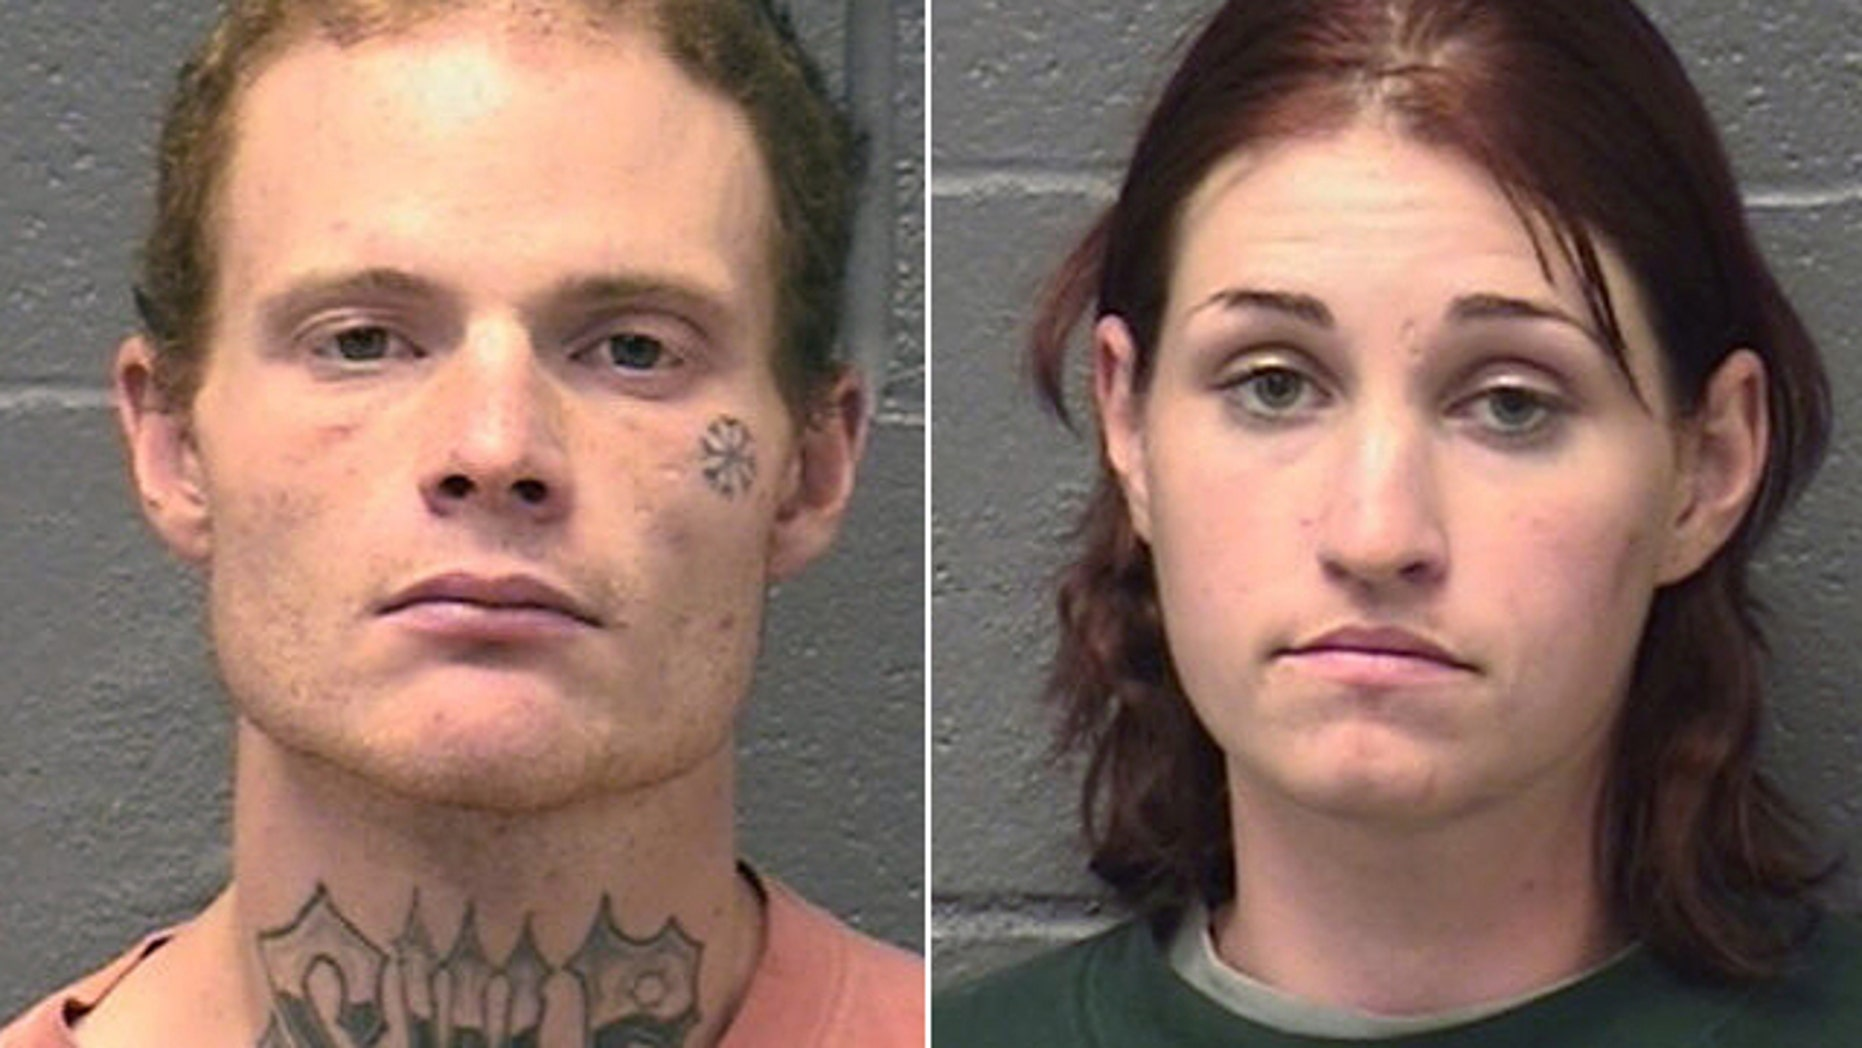 David Joseph Pedersen, 31, and his 24-year-old girlfriend, Holly Grigsby, are accused in a deadly crime spree across California, Oregon and Washington.